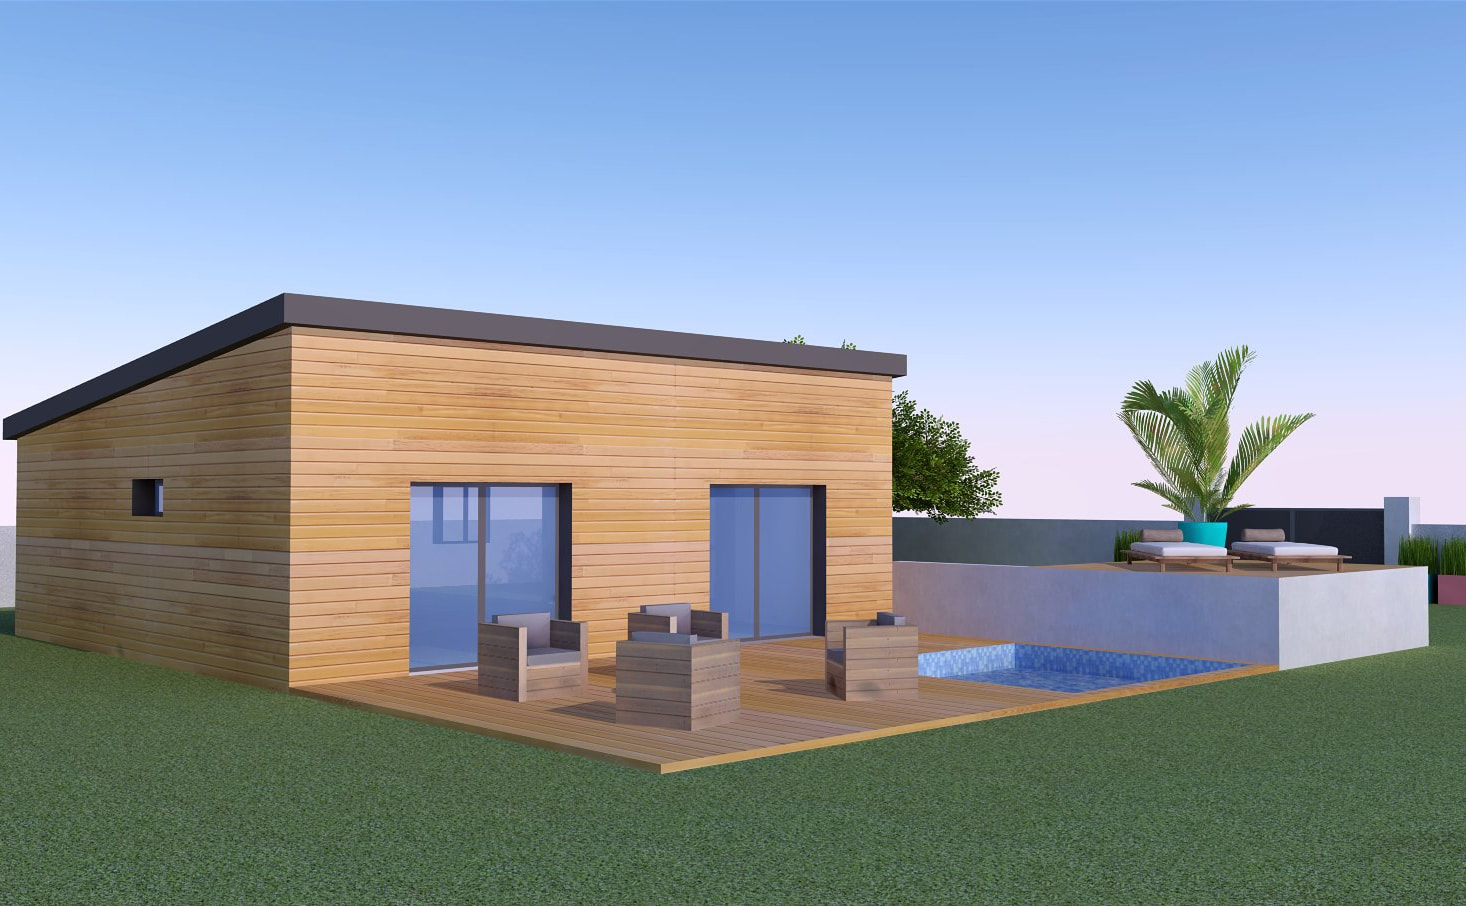 Prix construction maison en bois kit maison bois for Tarif construction maison